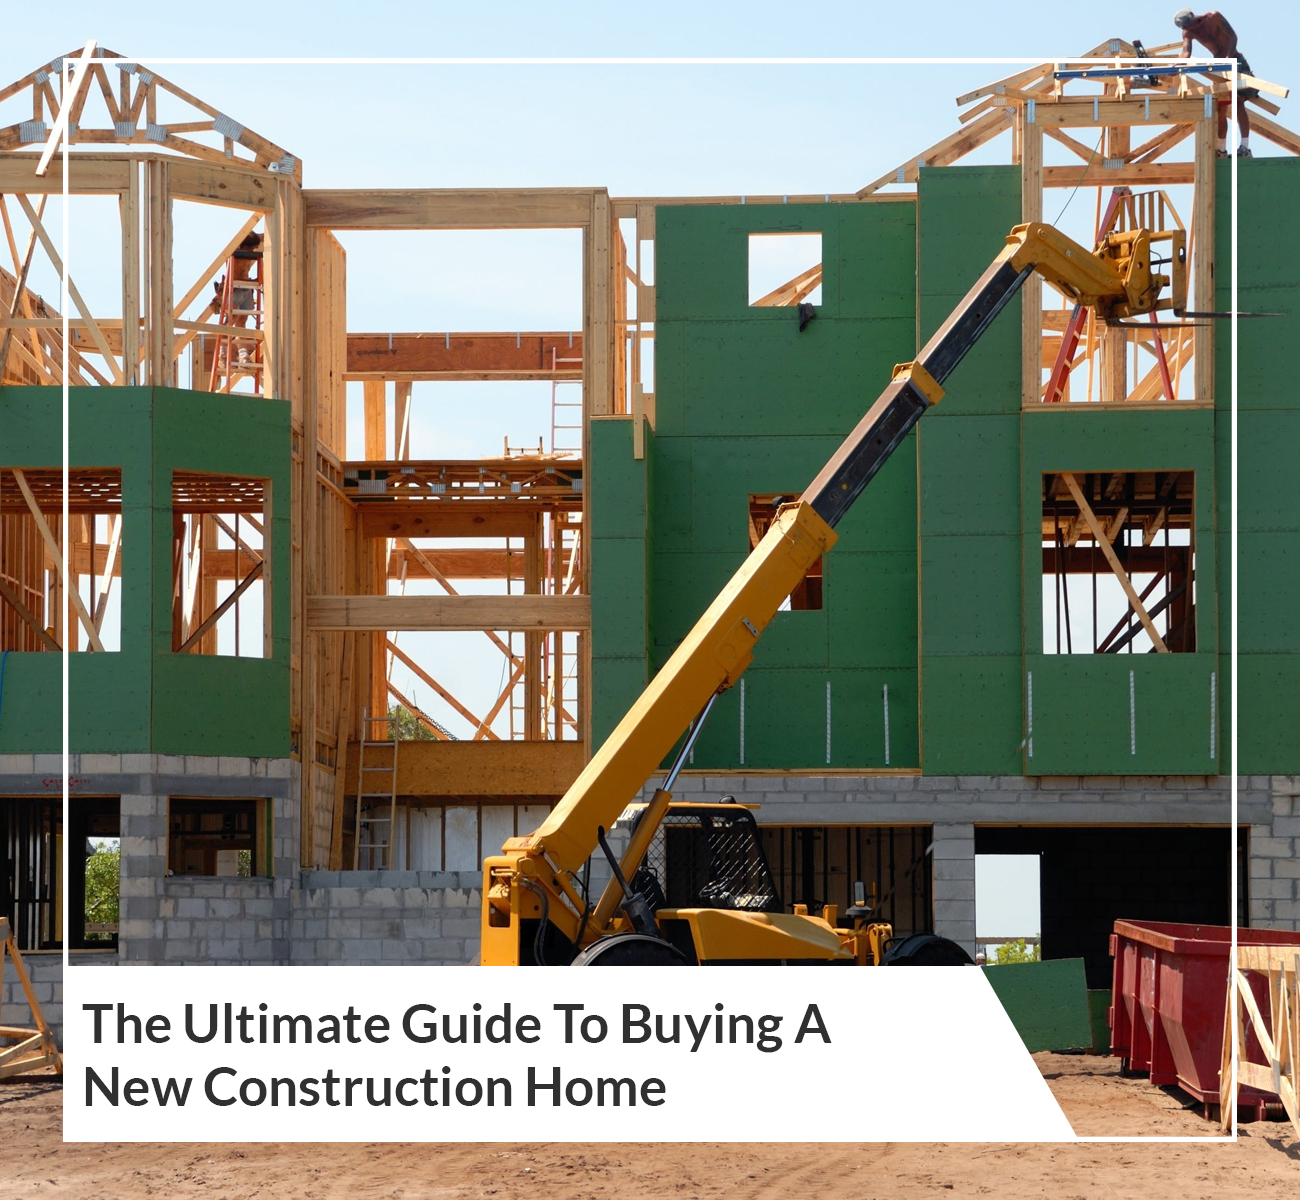 New Construction Guide